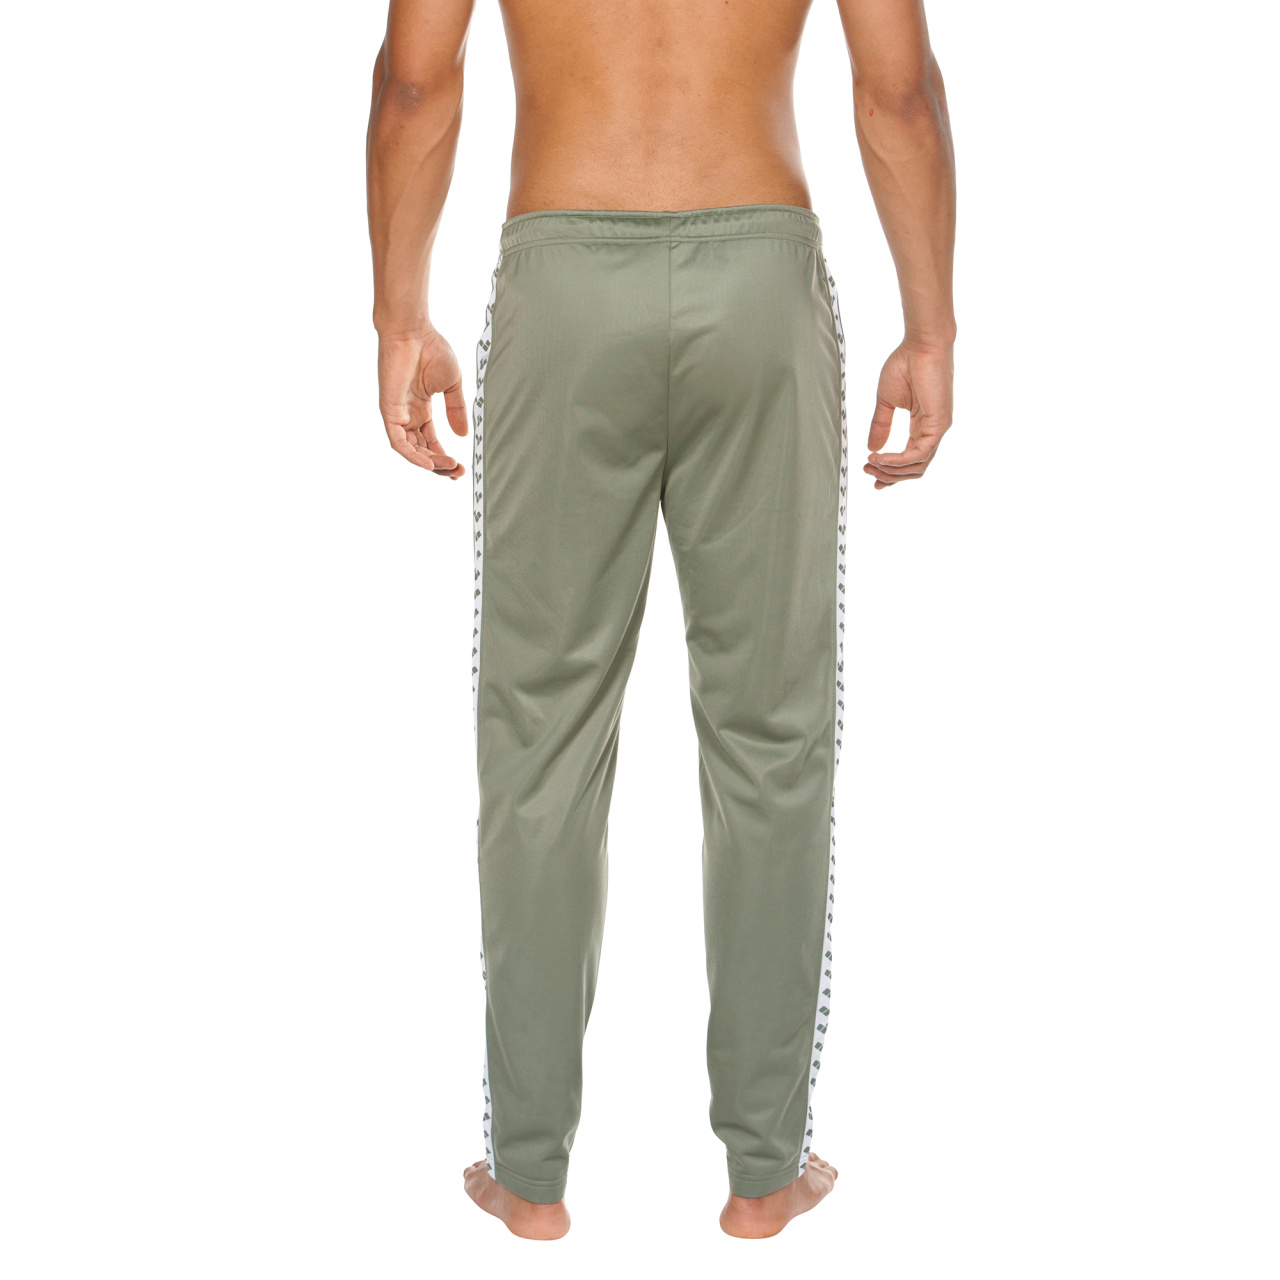 Pants Icons arena para Hombre Relax Team_7045